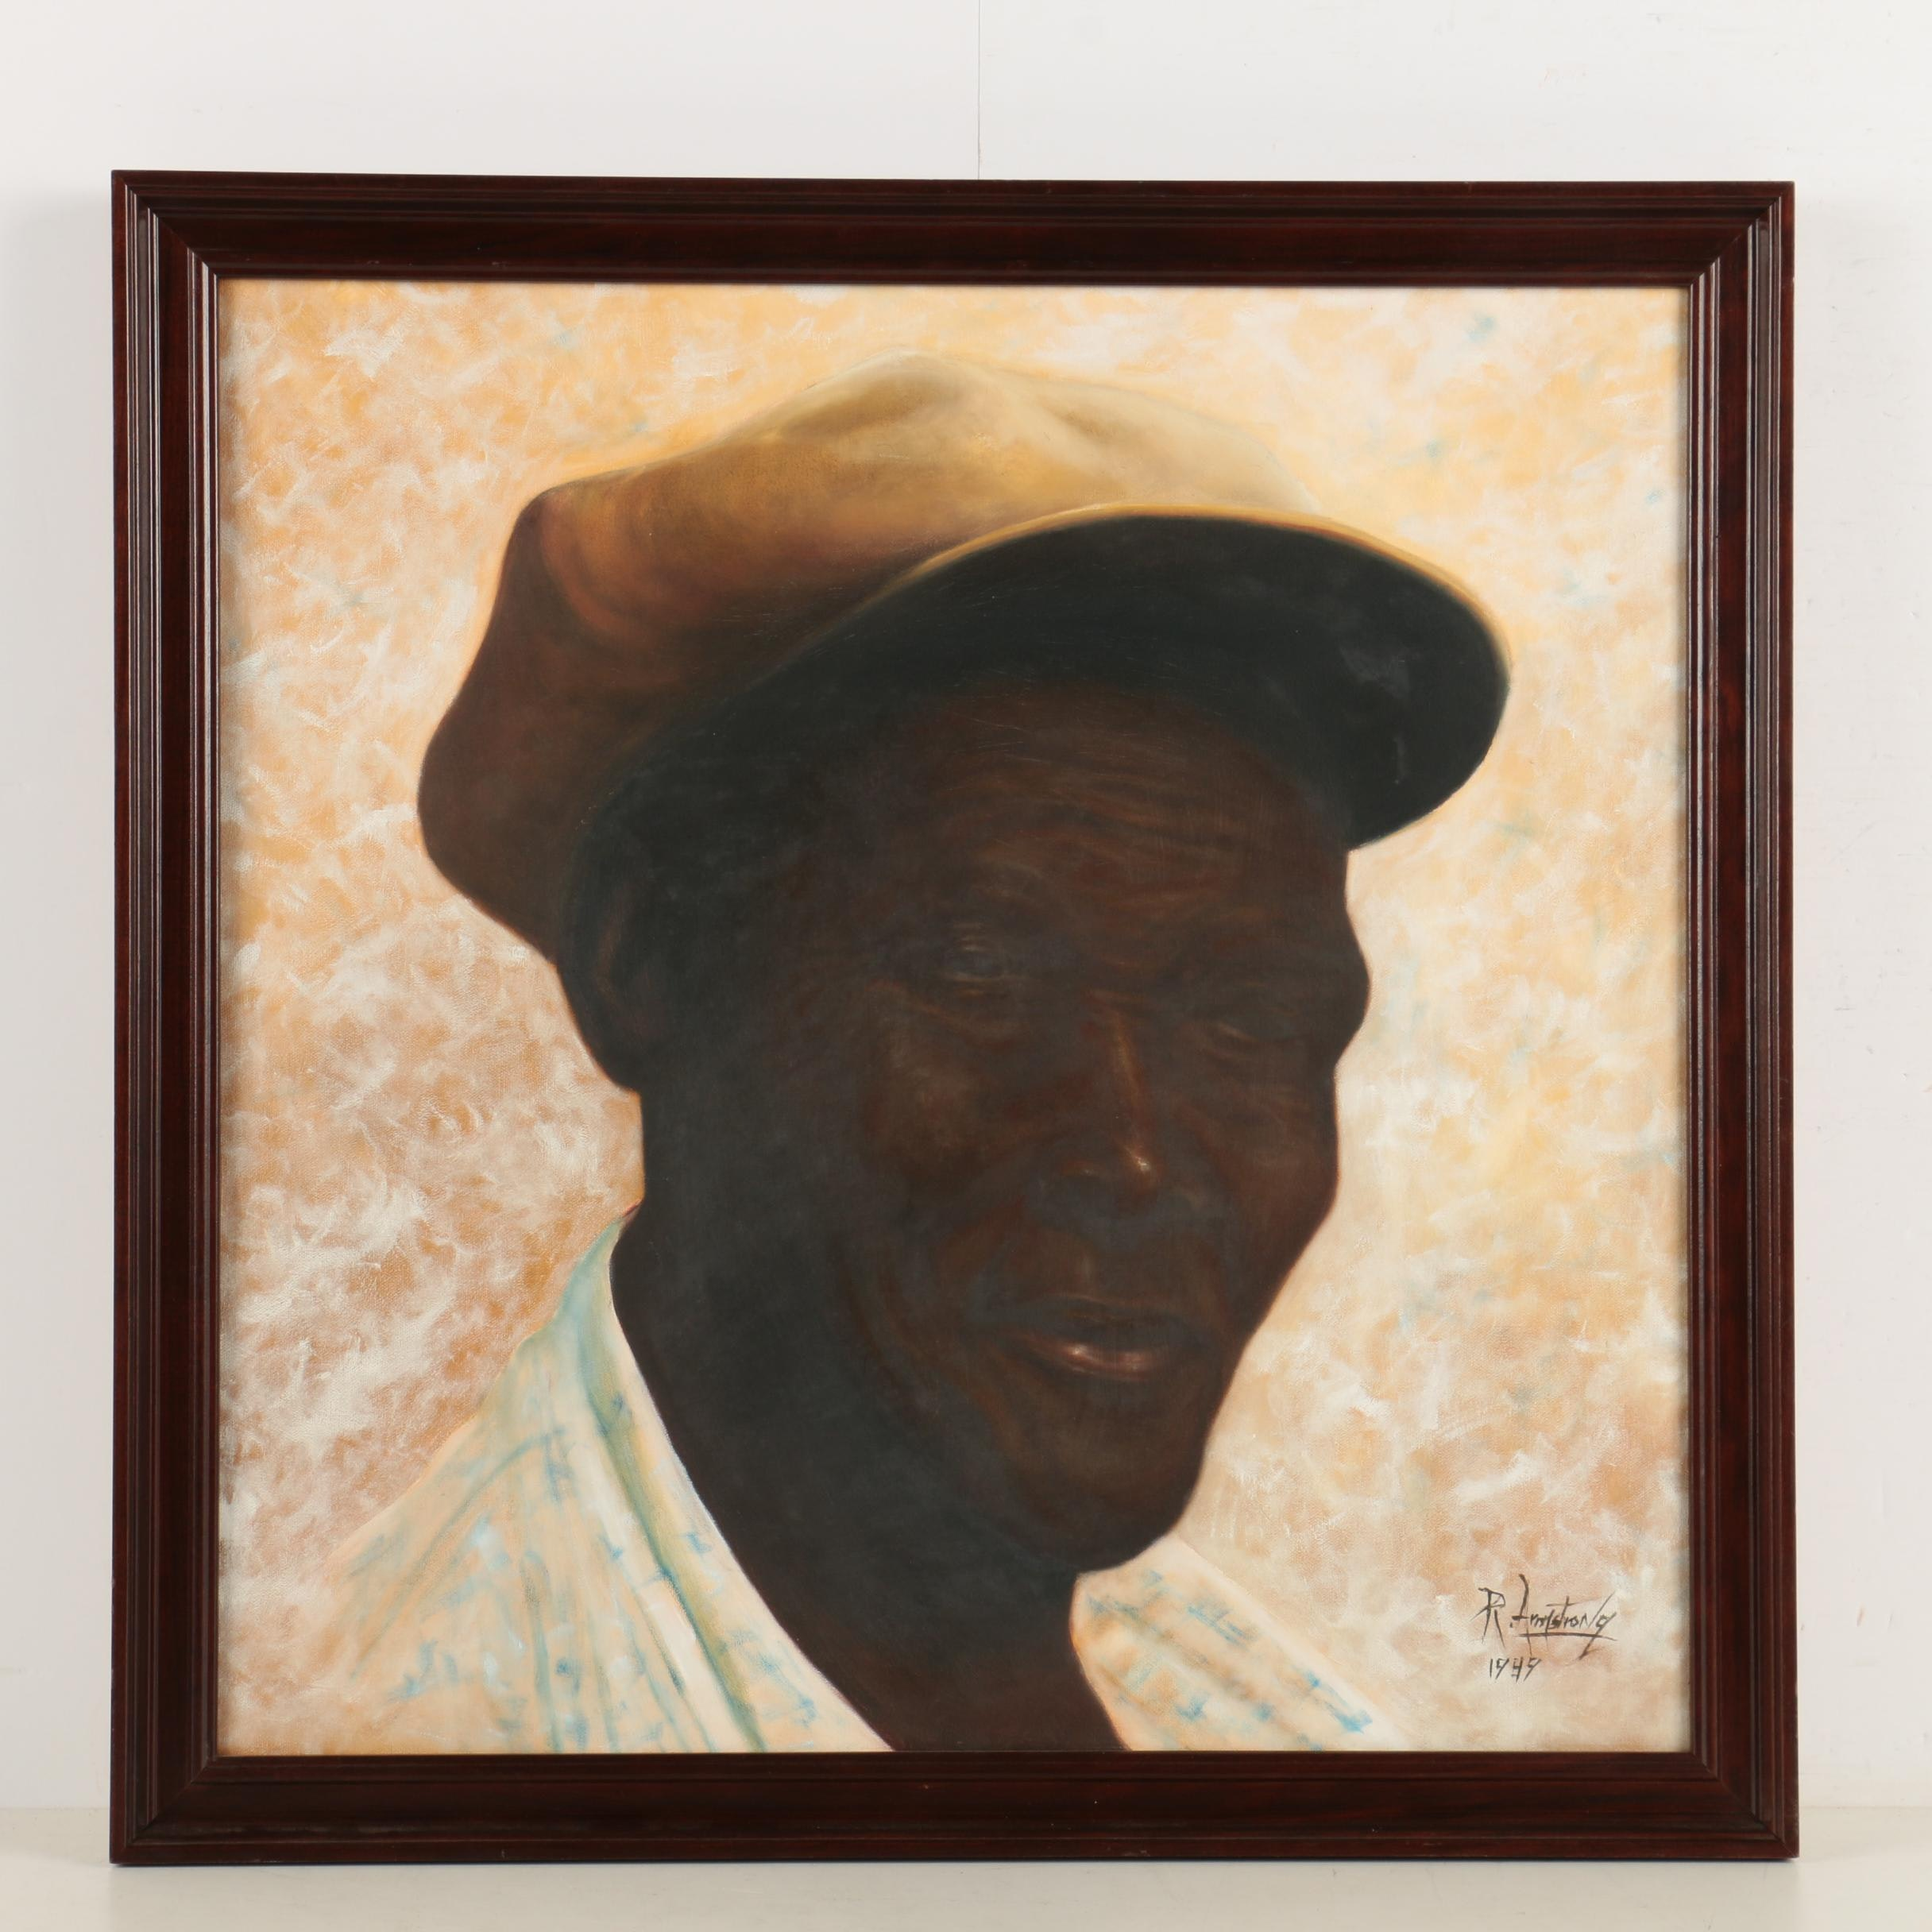 R. Armstrong Oil On Canvas Portrait of a Man in a Tan Hat